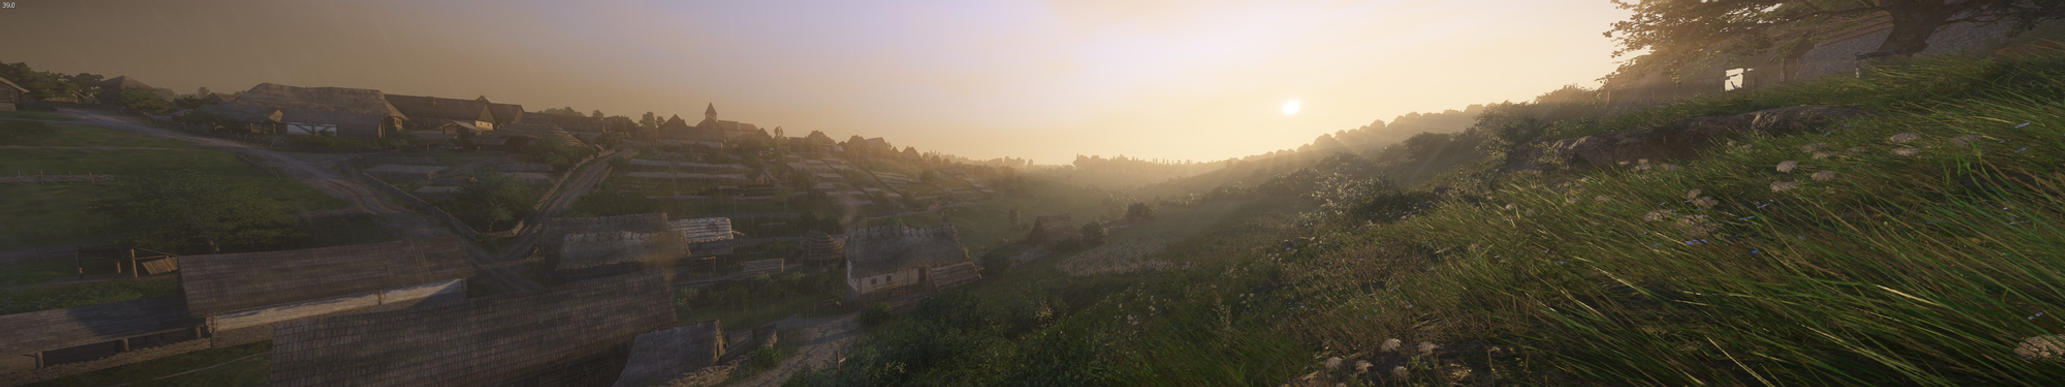 Kingdom_Come_Deliverance by Usmovers02